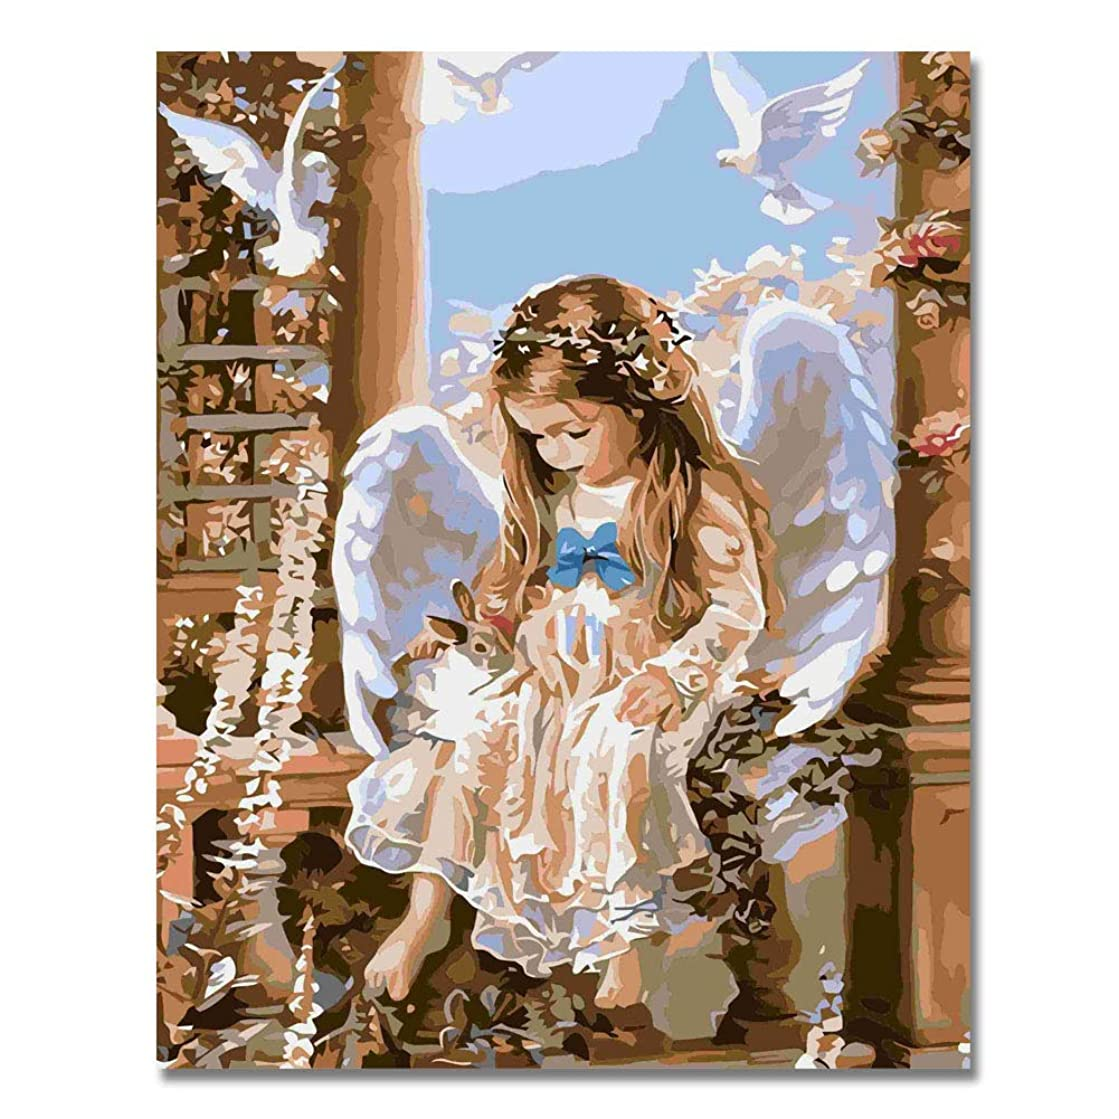 LIUDAO DIY Oil Painting on Canvas Paint by Number Kit for Adults Kids Beginner - Angel Girl - 16x20 Inches Frameless